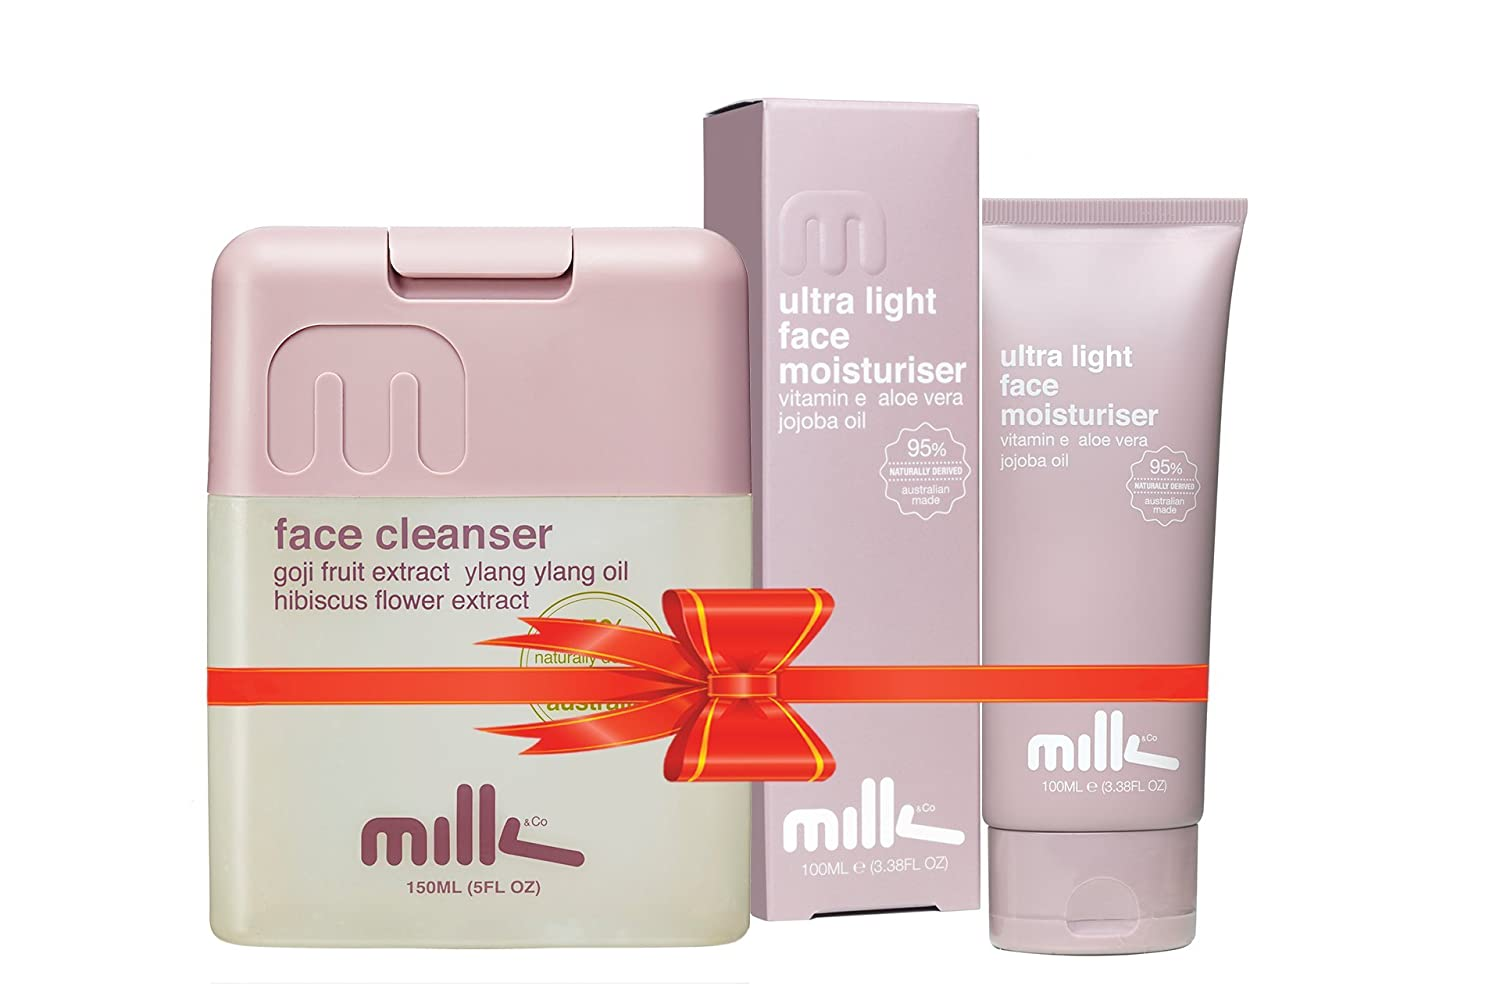 Milk & Co Women Combo (Ultra Light Moisturizer & Face Cleanser)